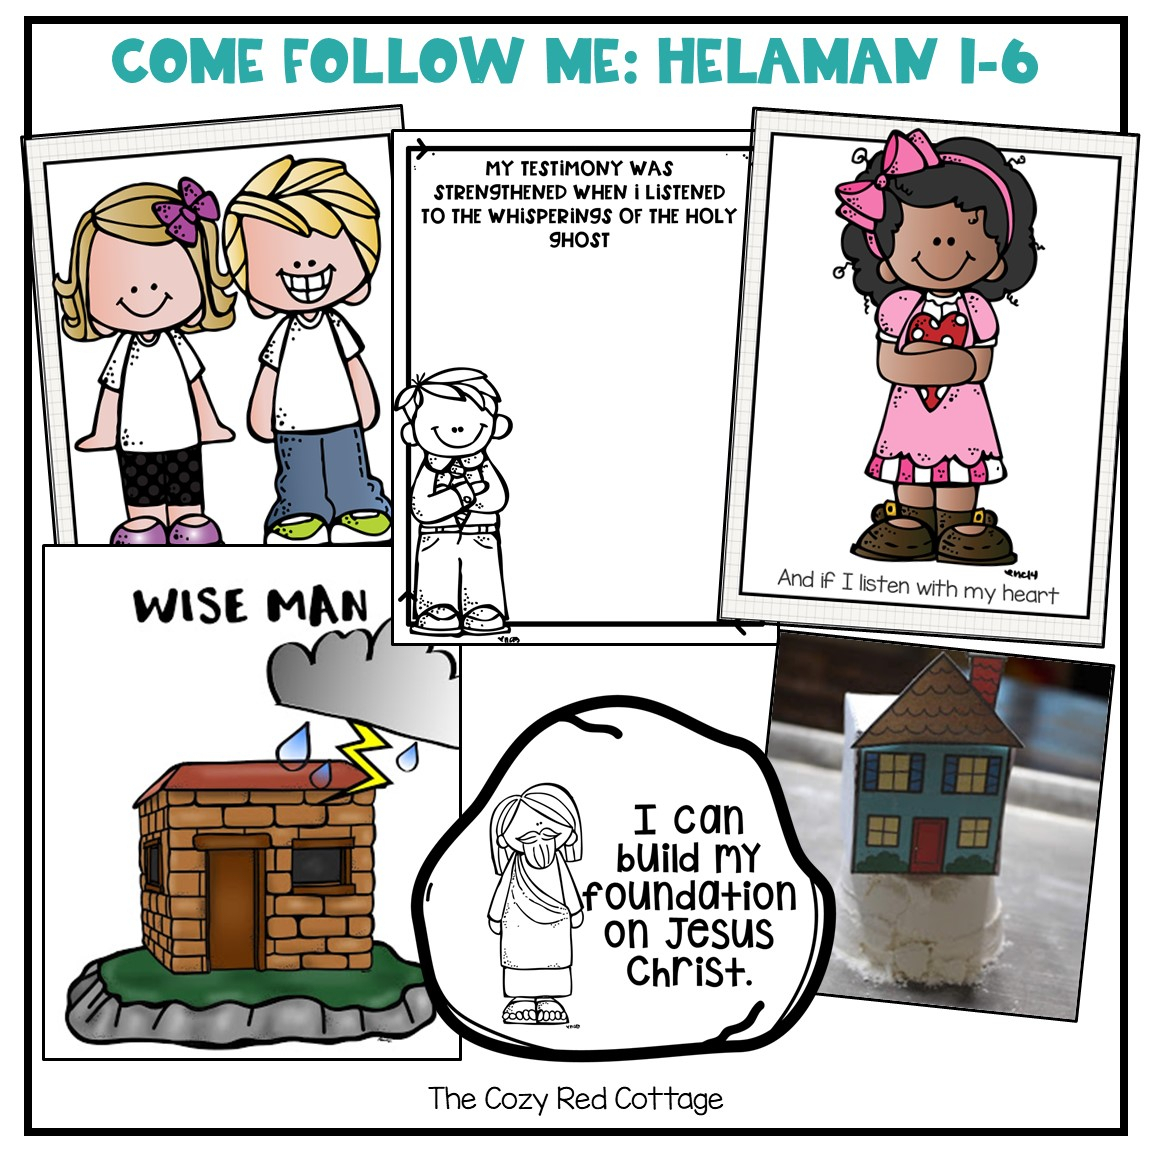 The Cozy Red Cottage: Come Follow Me: Helaman 1-6 in The Cozy Red Cottage